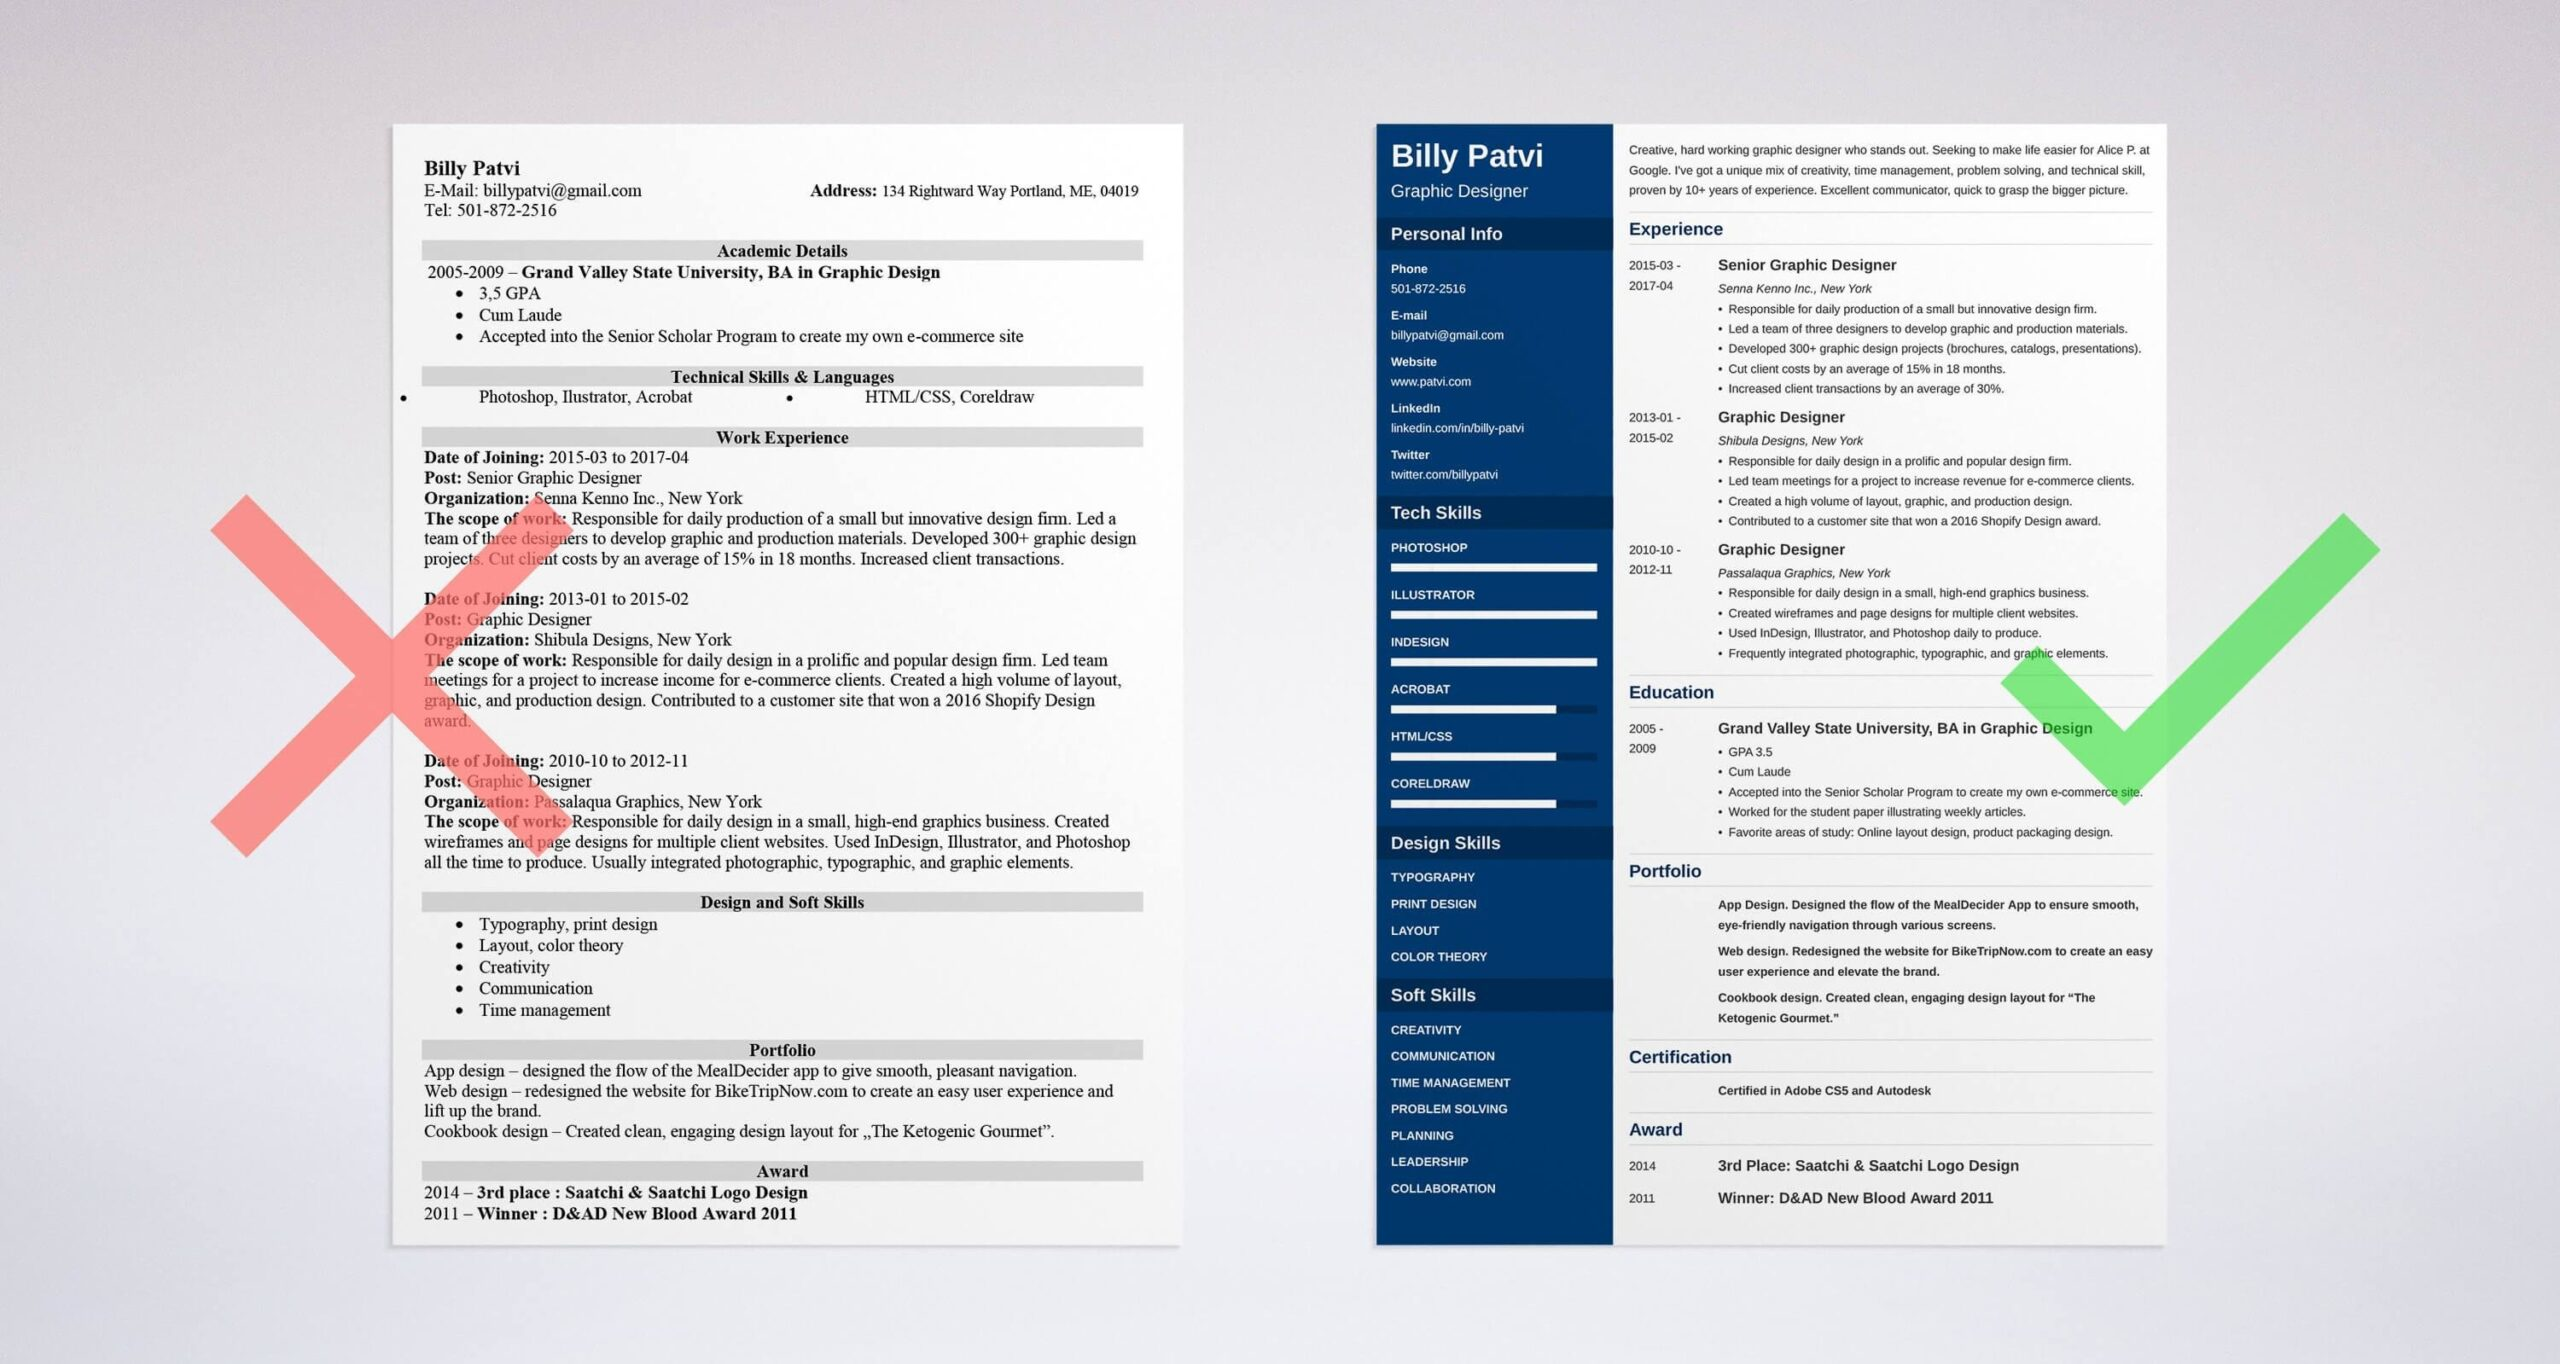 resume contact information tips phone number more format graphic designer samples Resume Resume Contact Information Format